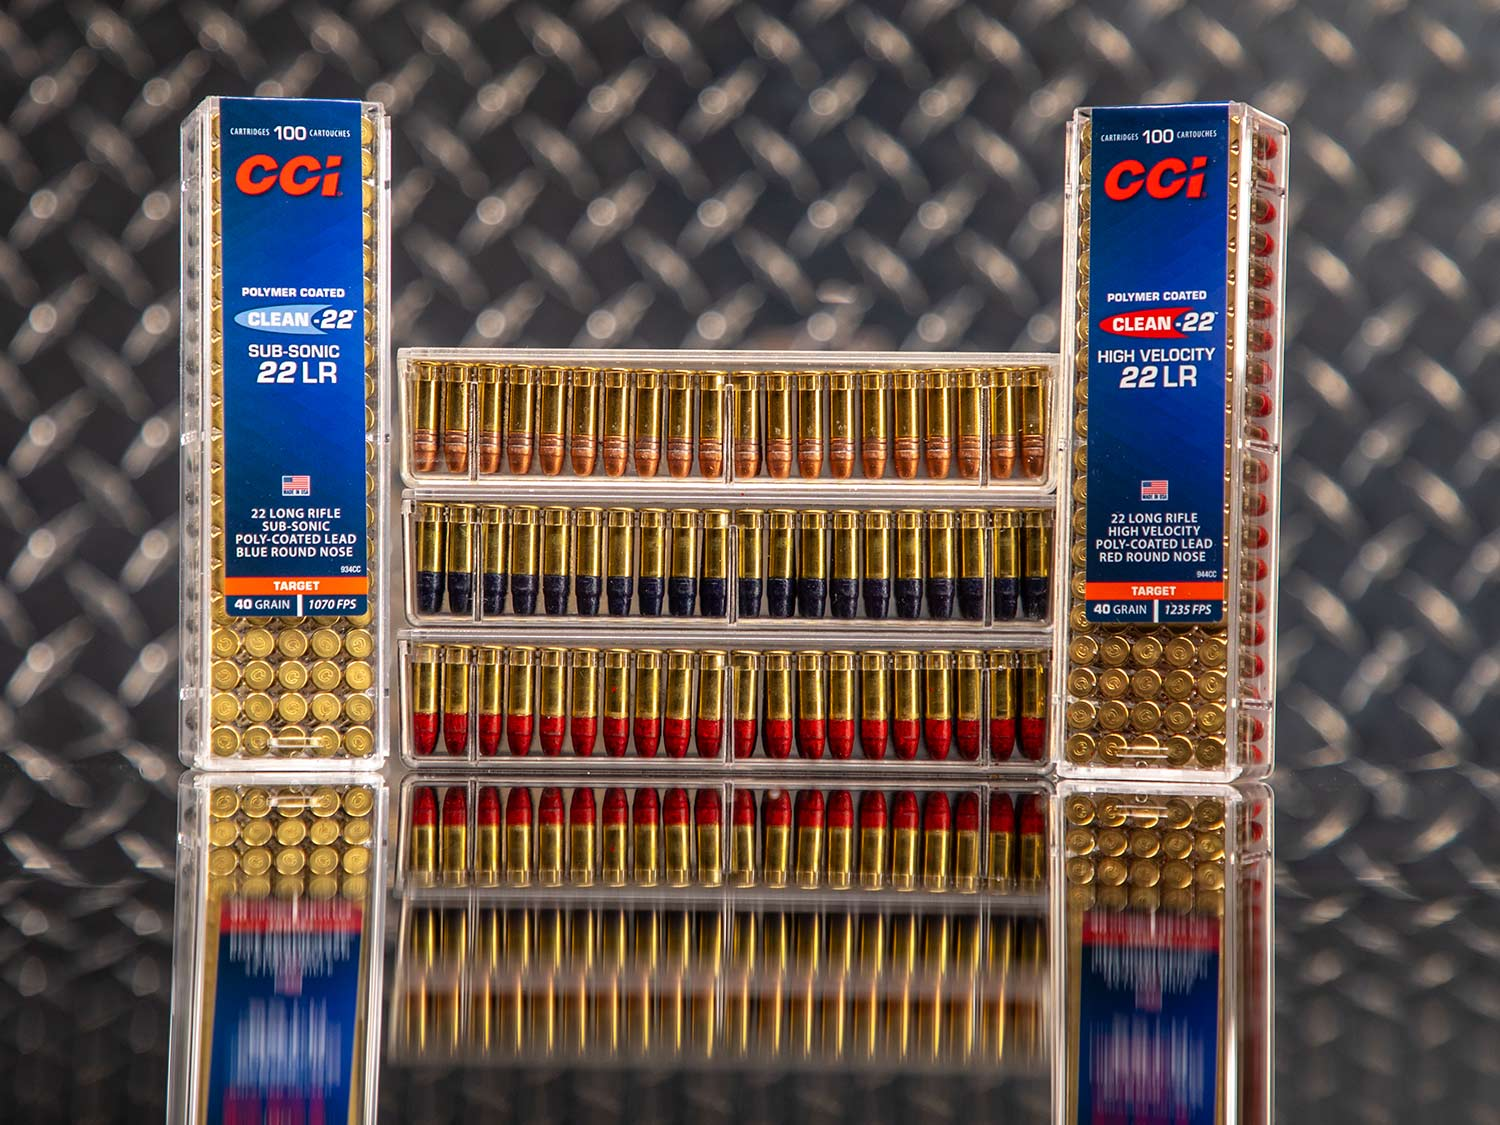 Several boxes of CCI .22 LR ammo.